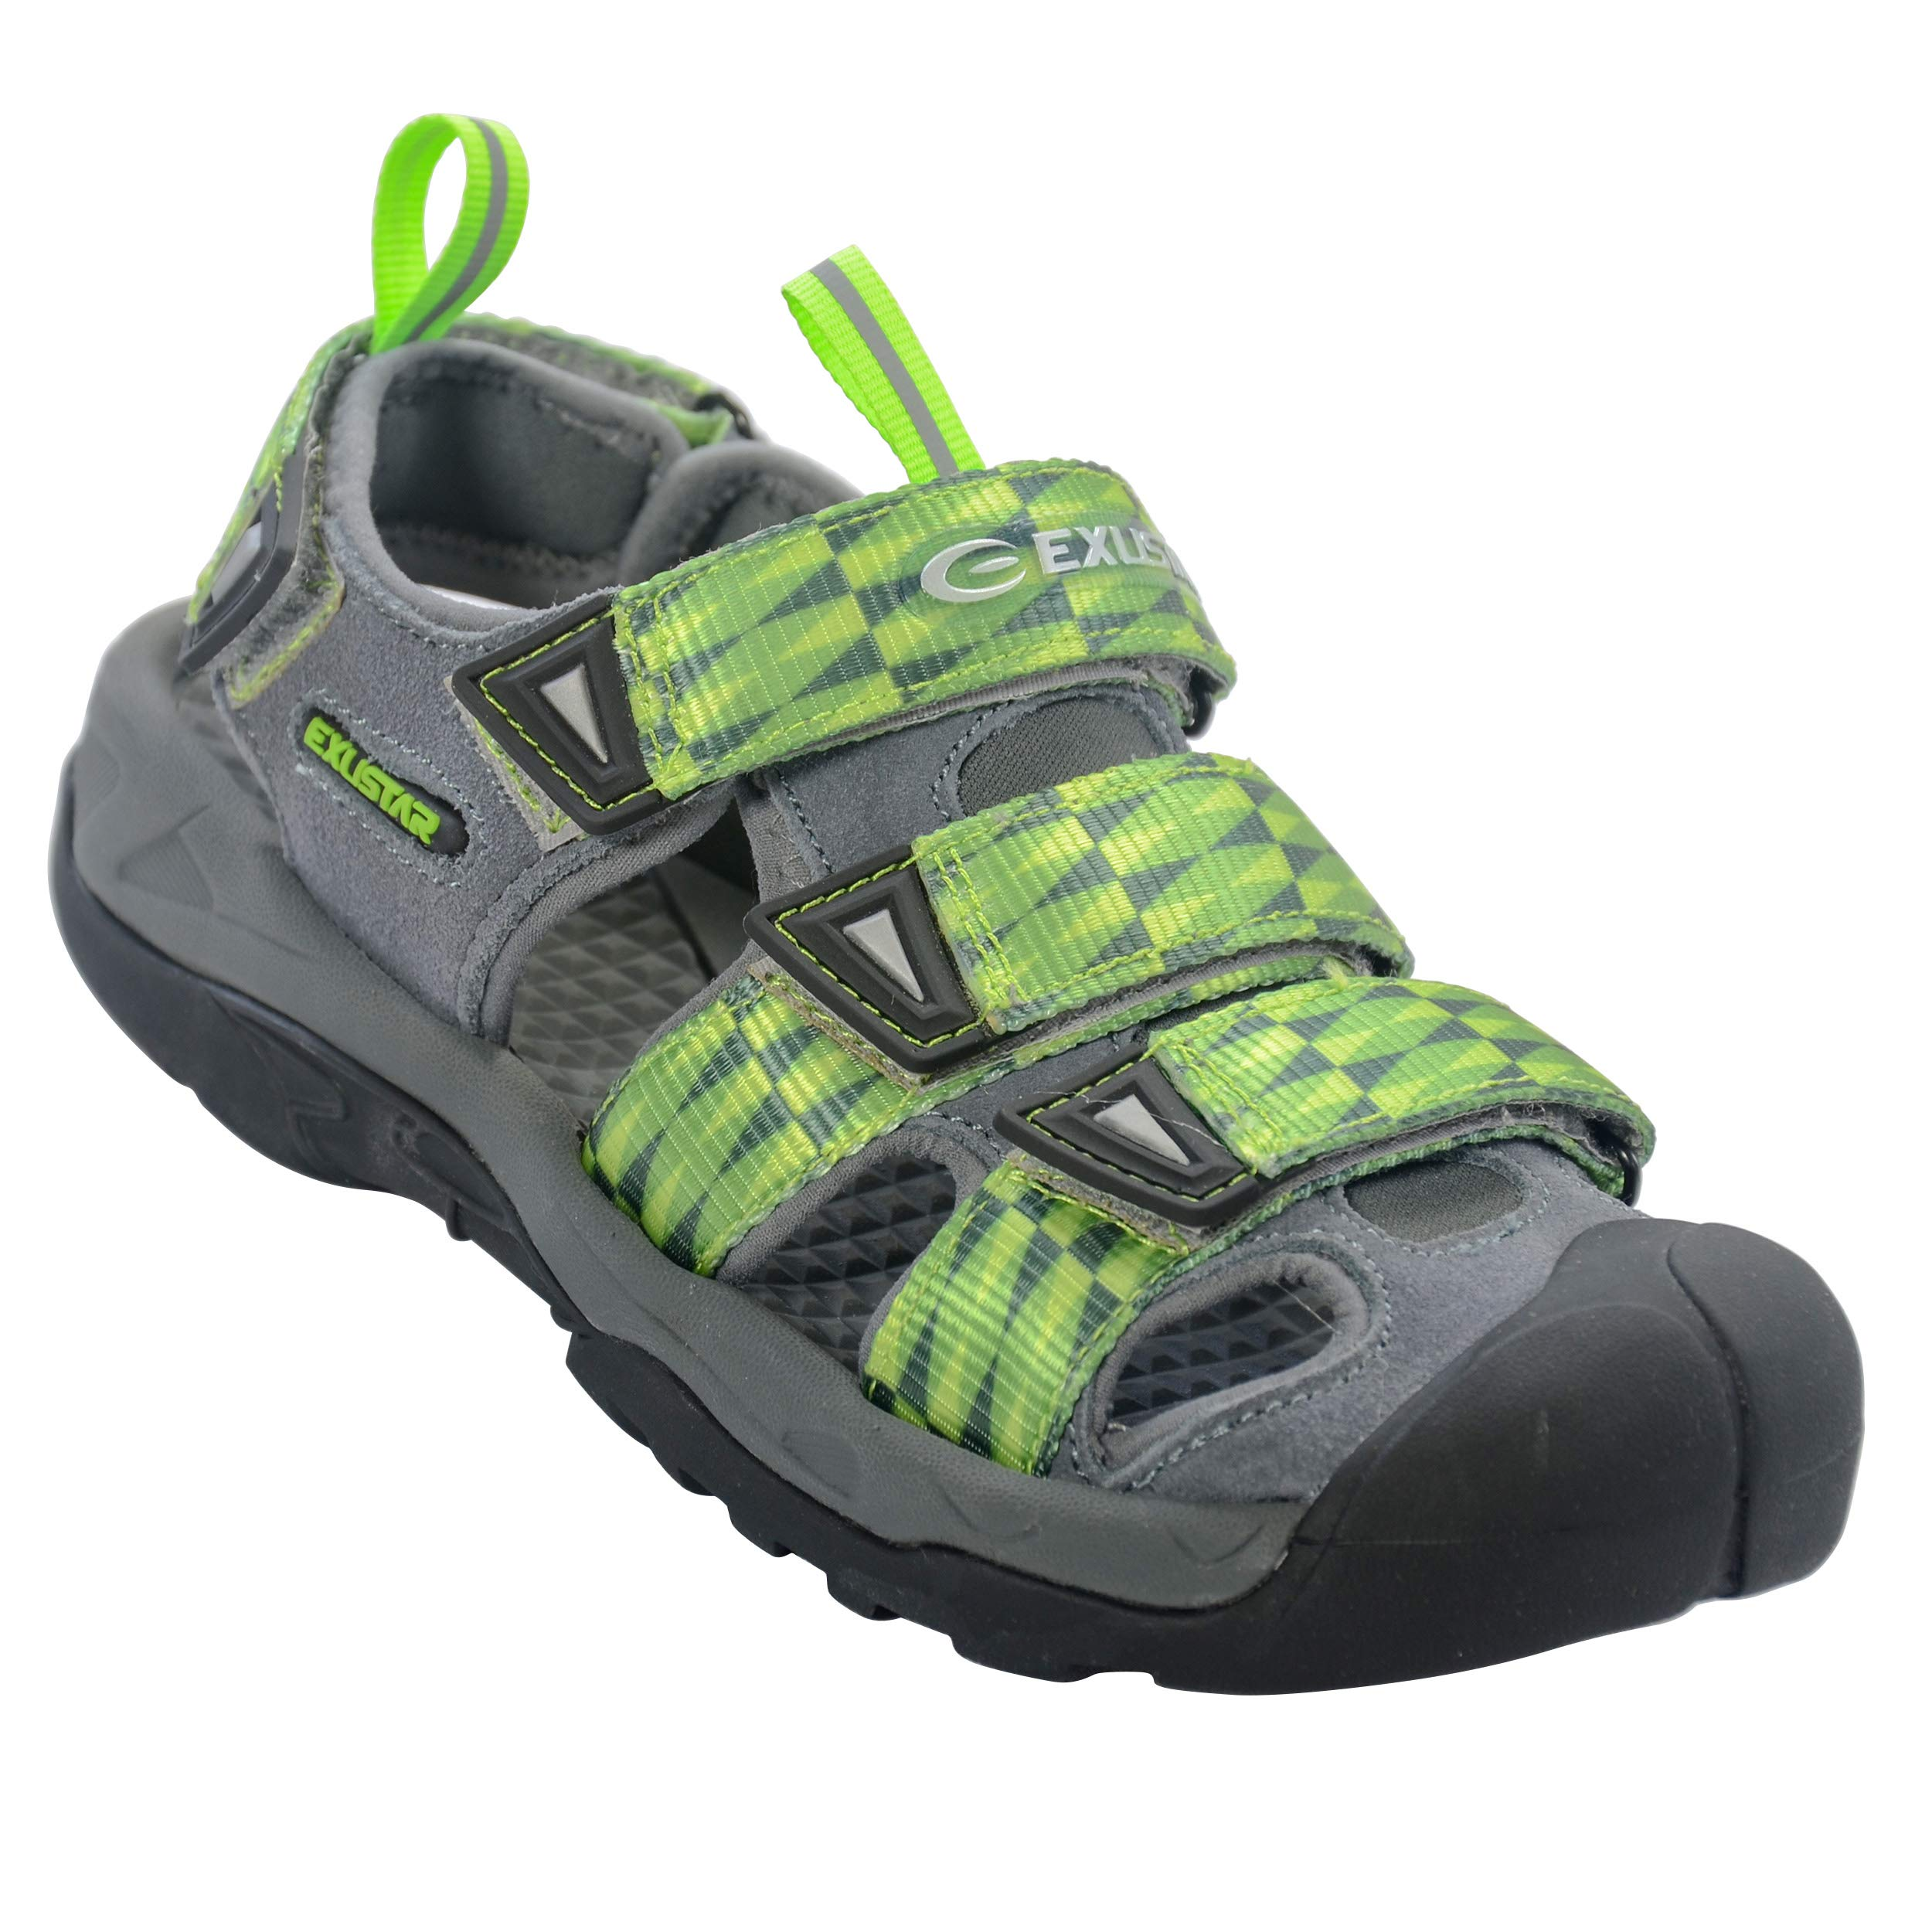 E-SS515A Clipless Sandal 45-46 Euro or 11-12 US by Exustar